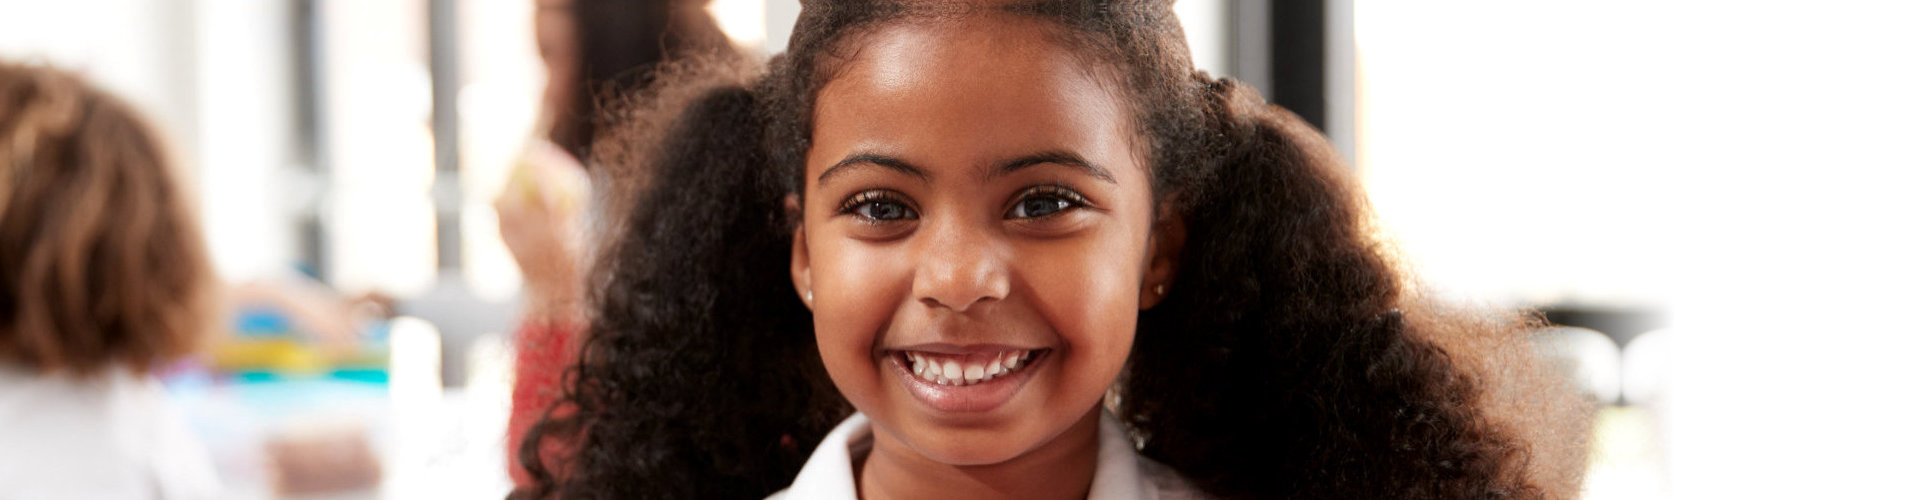 little girl smiling at the camera